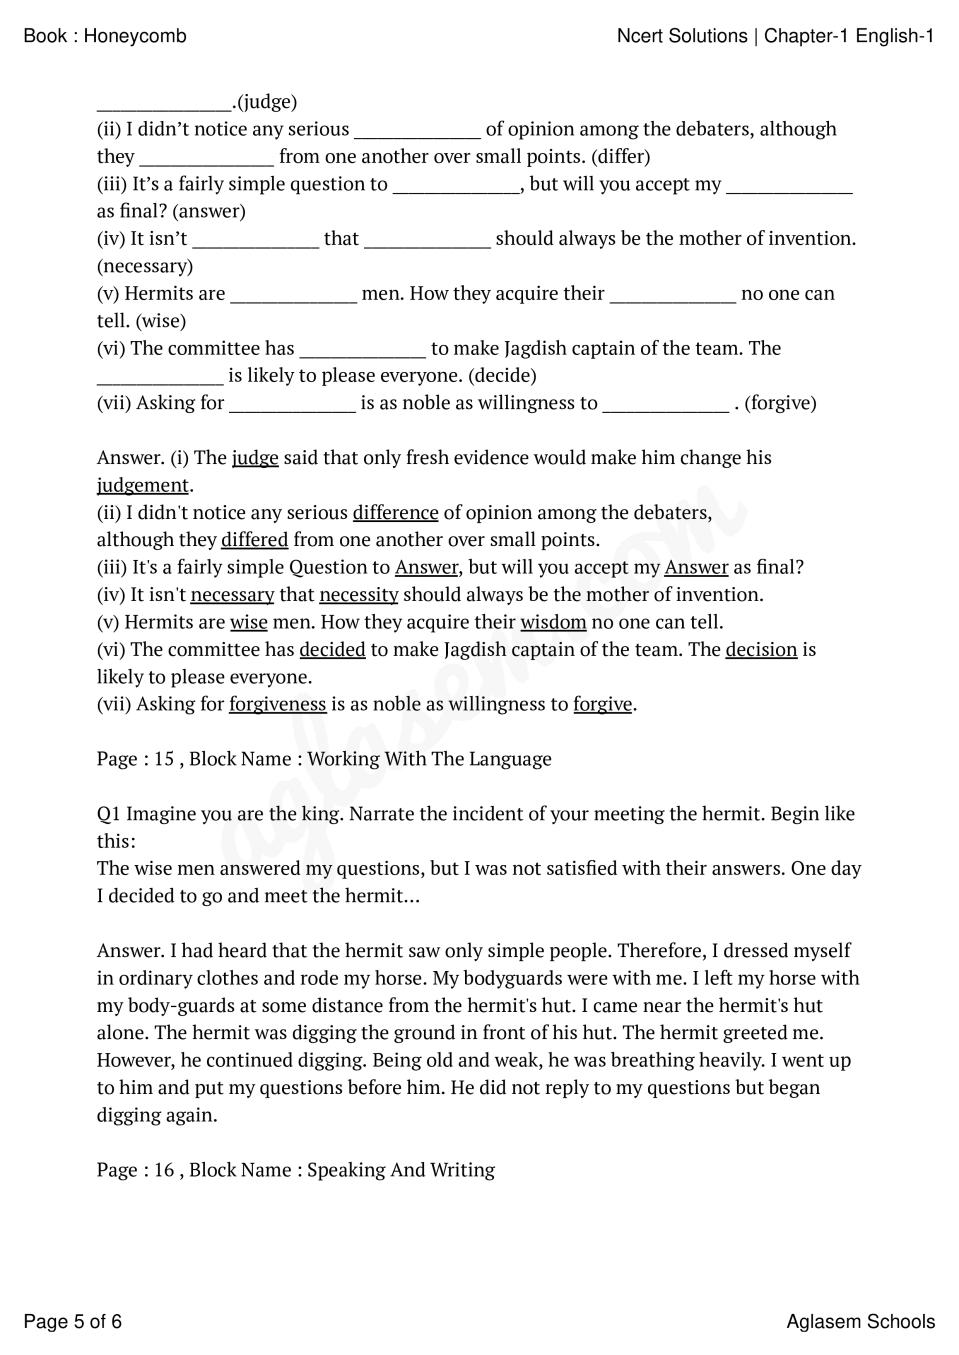 NCERT Solutions for Class 7 English Chapter 1 Three